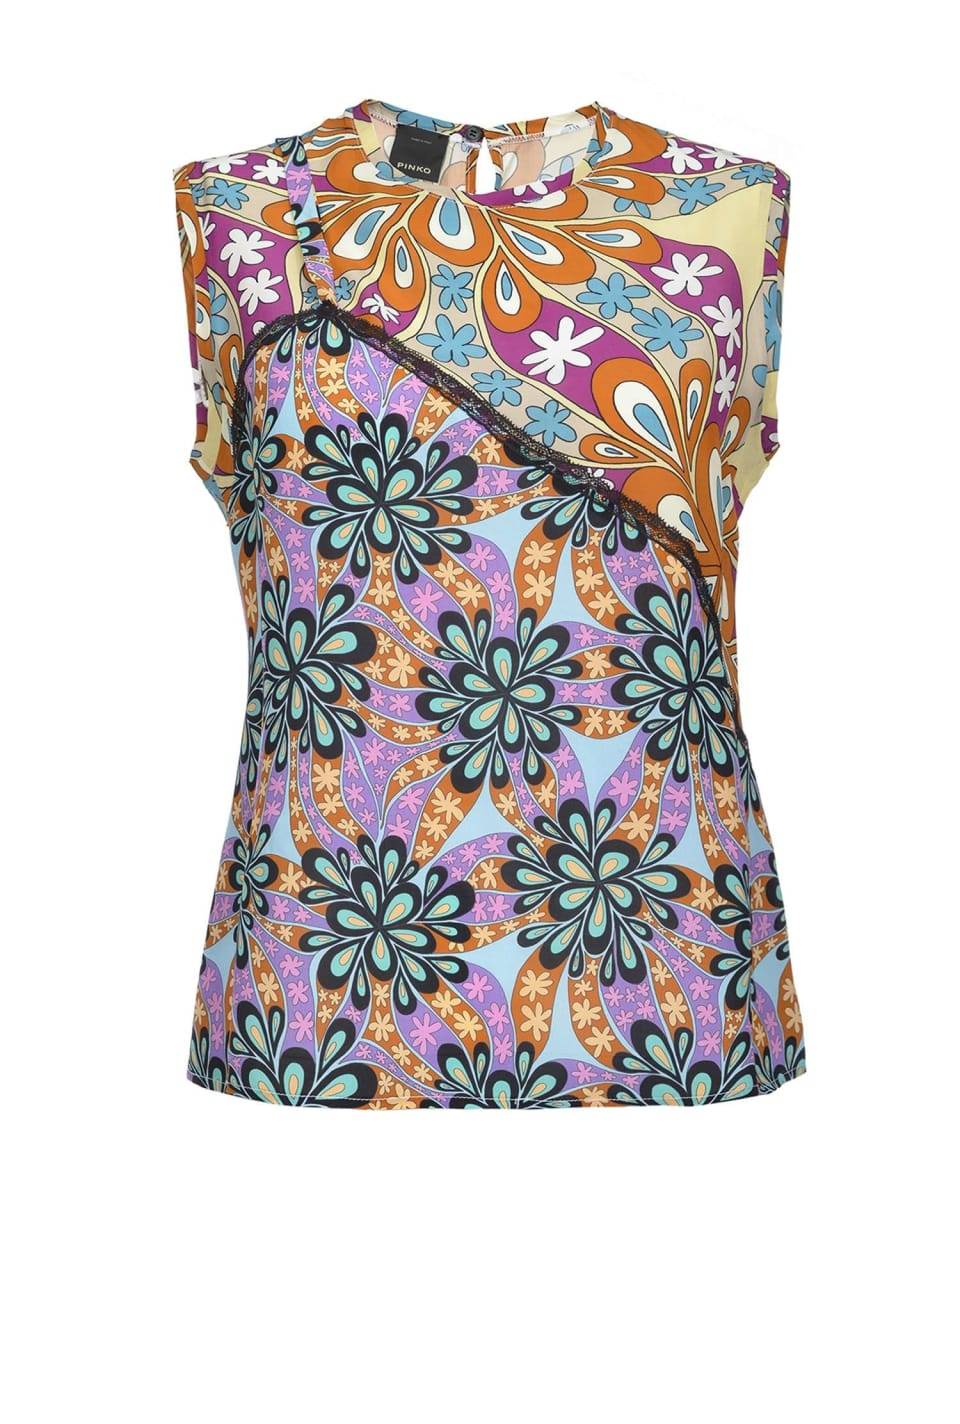 70s flower print top - Pinko